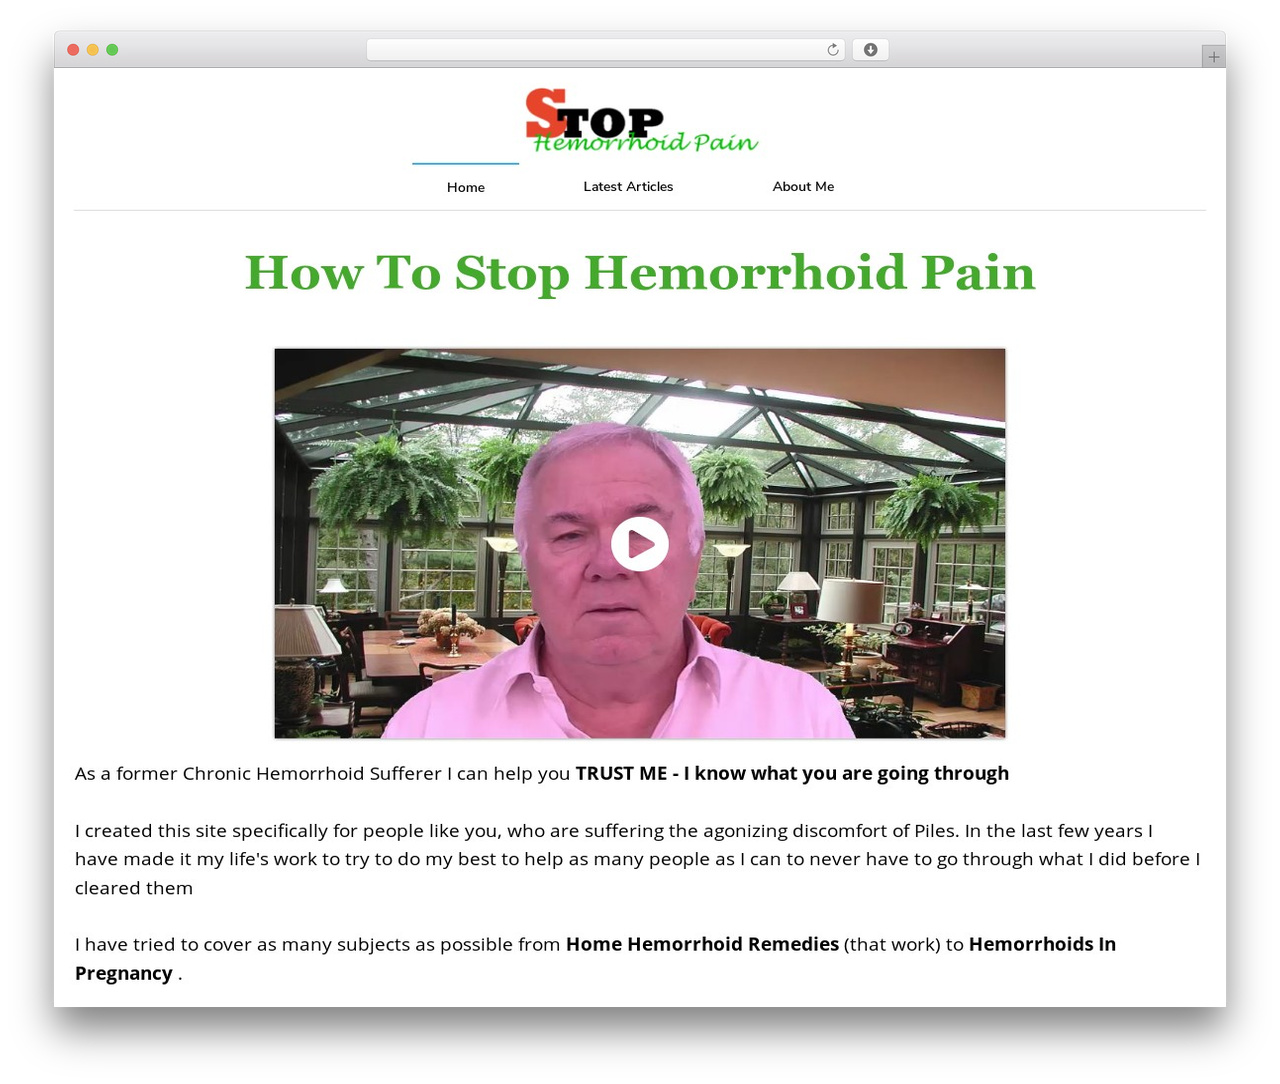 WordPress theme Minus - stophemorrhoidpain.com